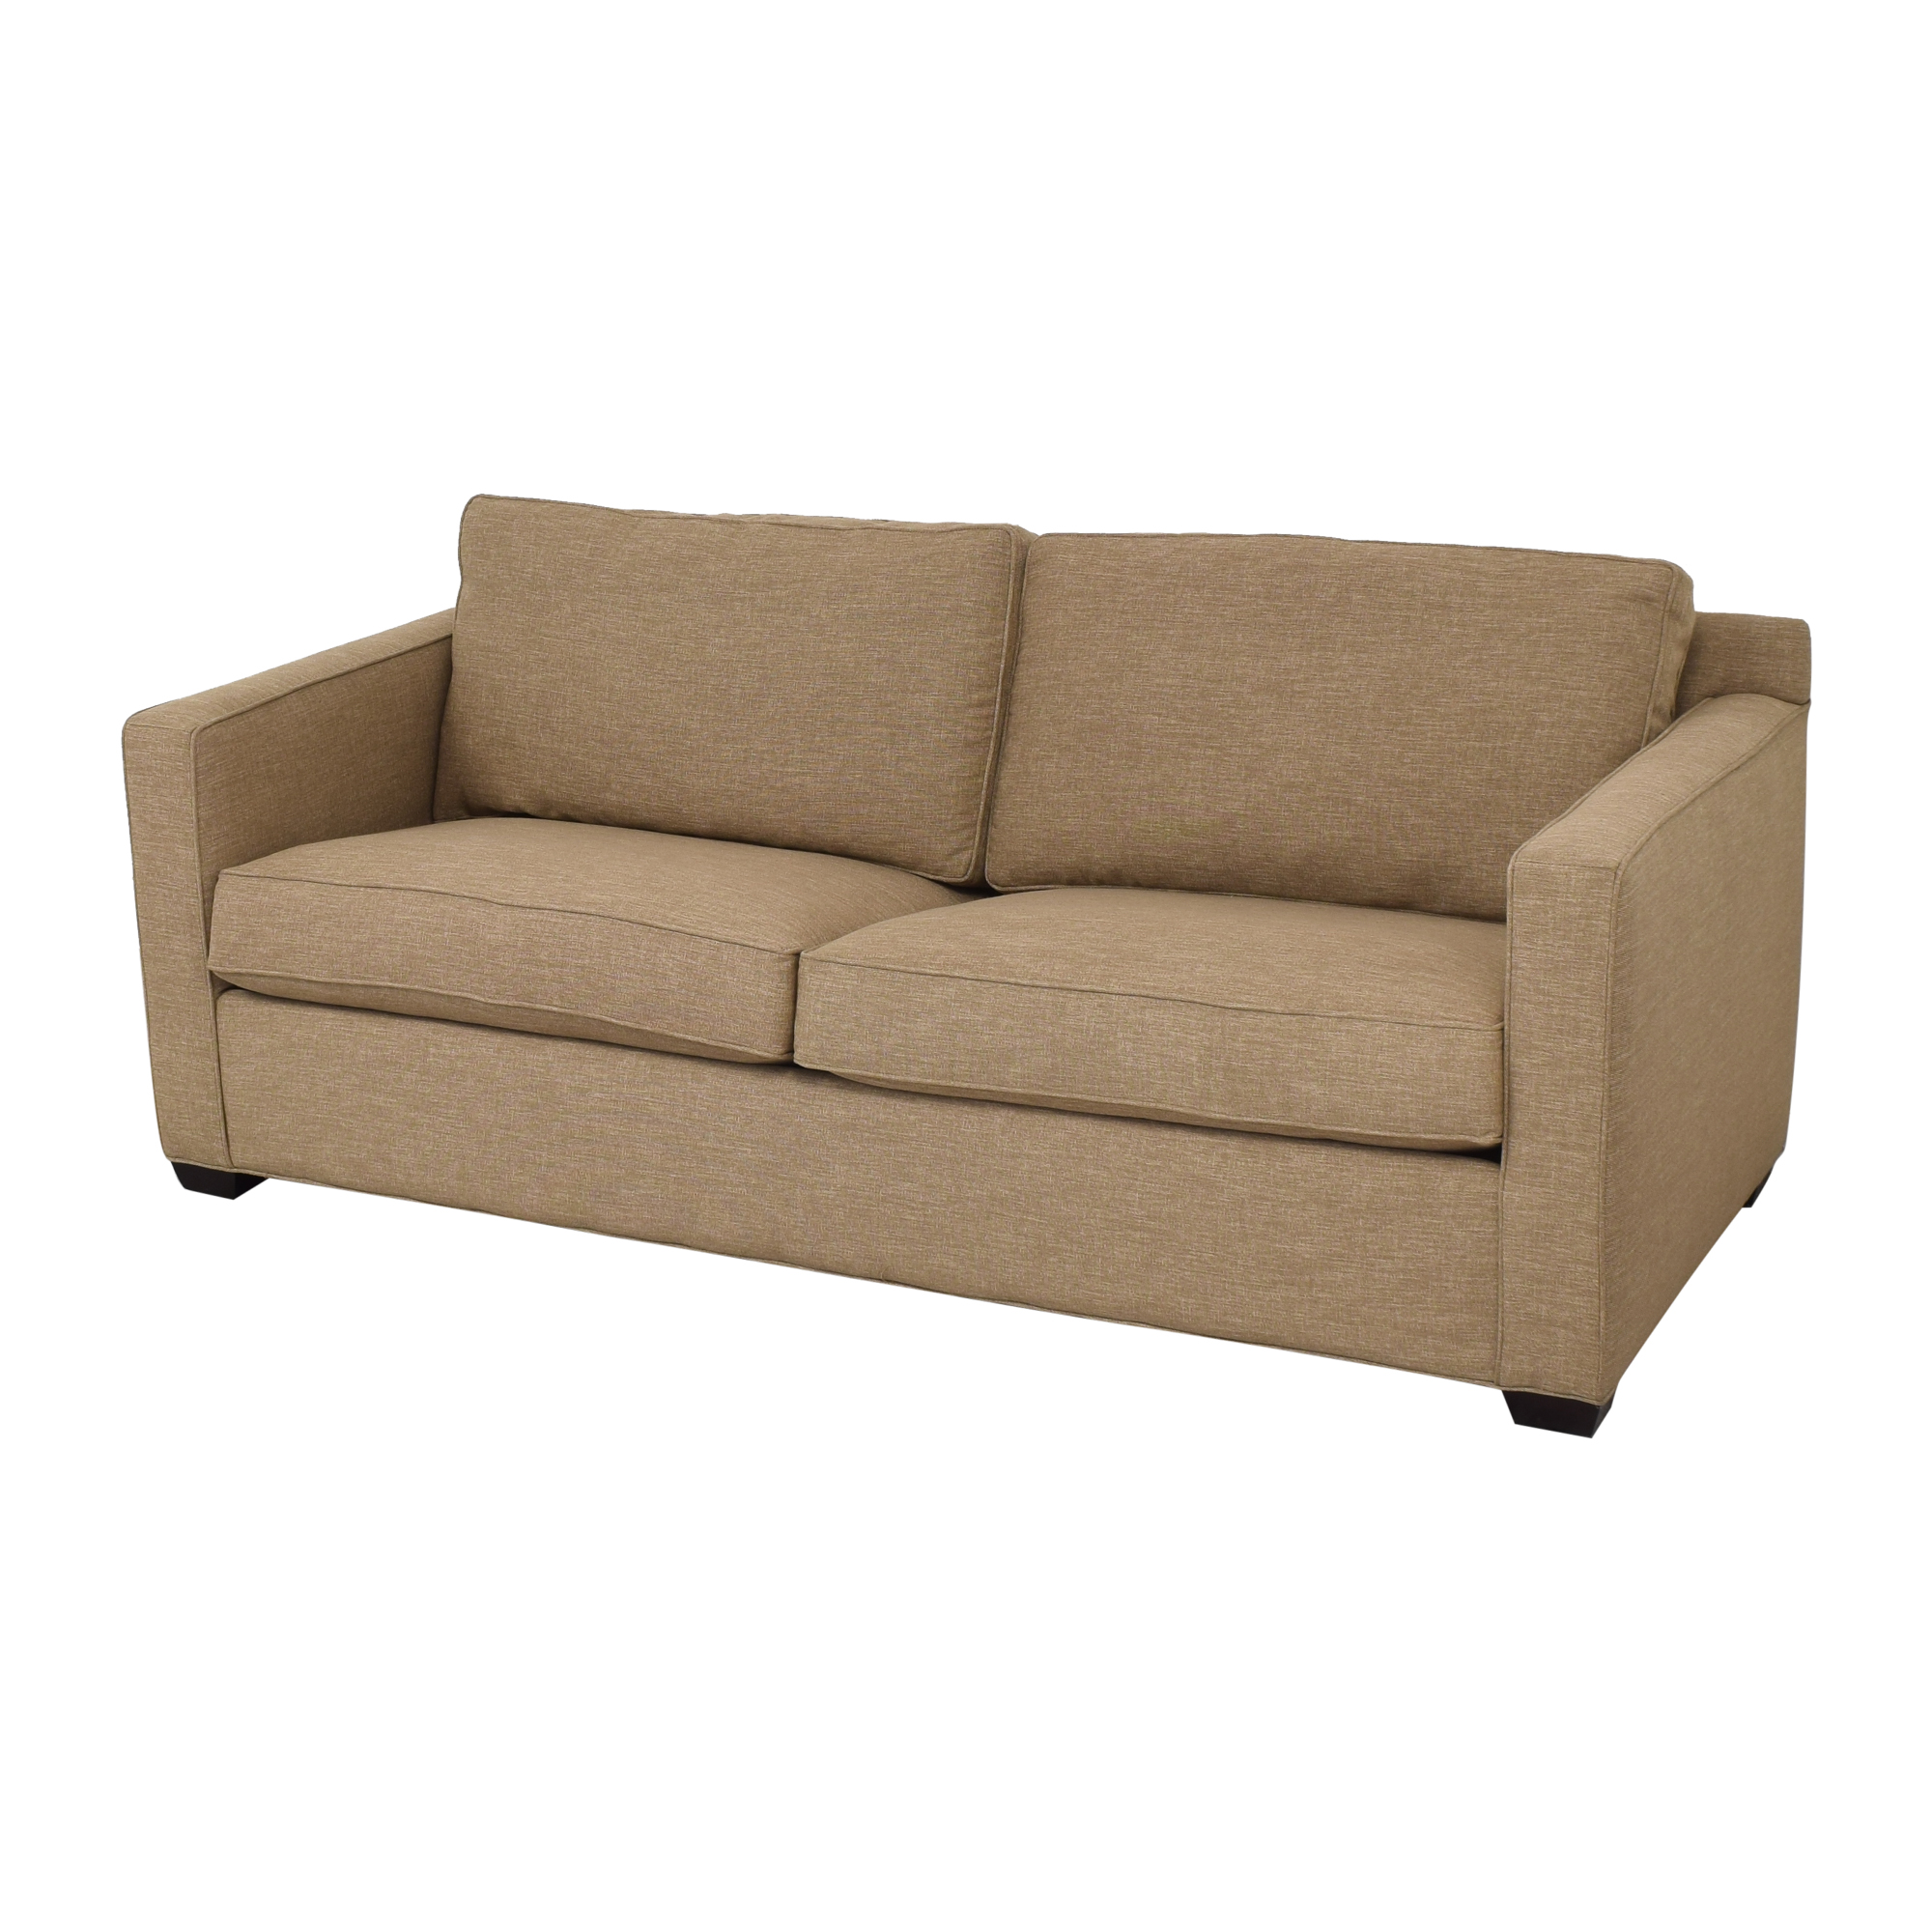 Crate & Barrel Davis Full Sleeper Sofa sale